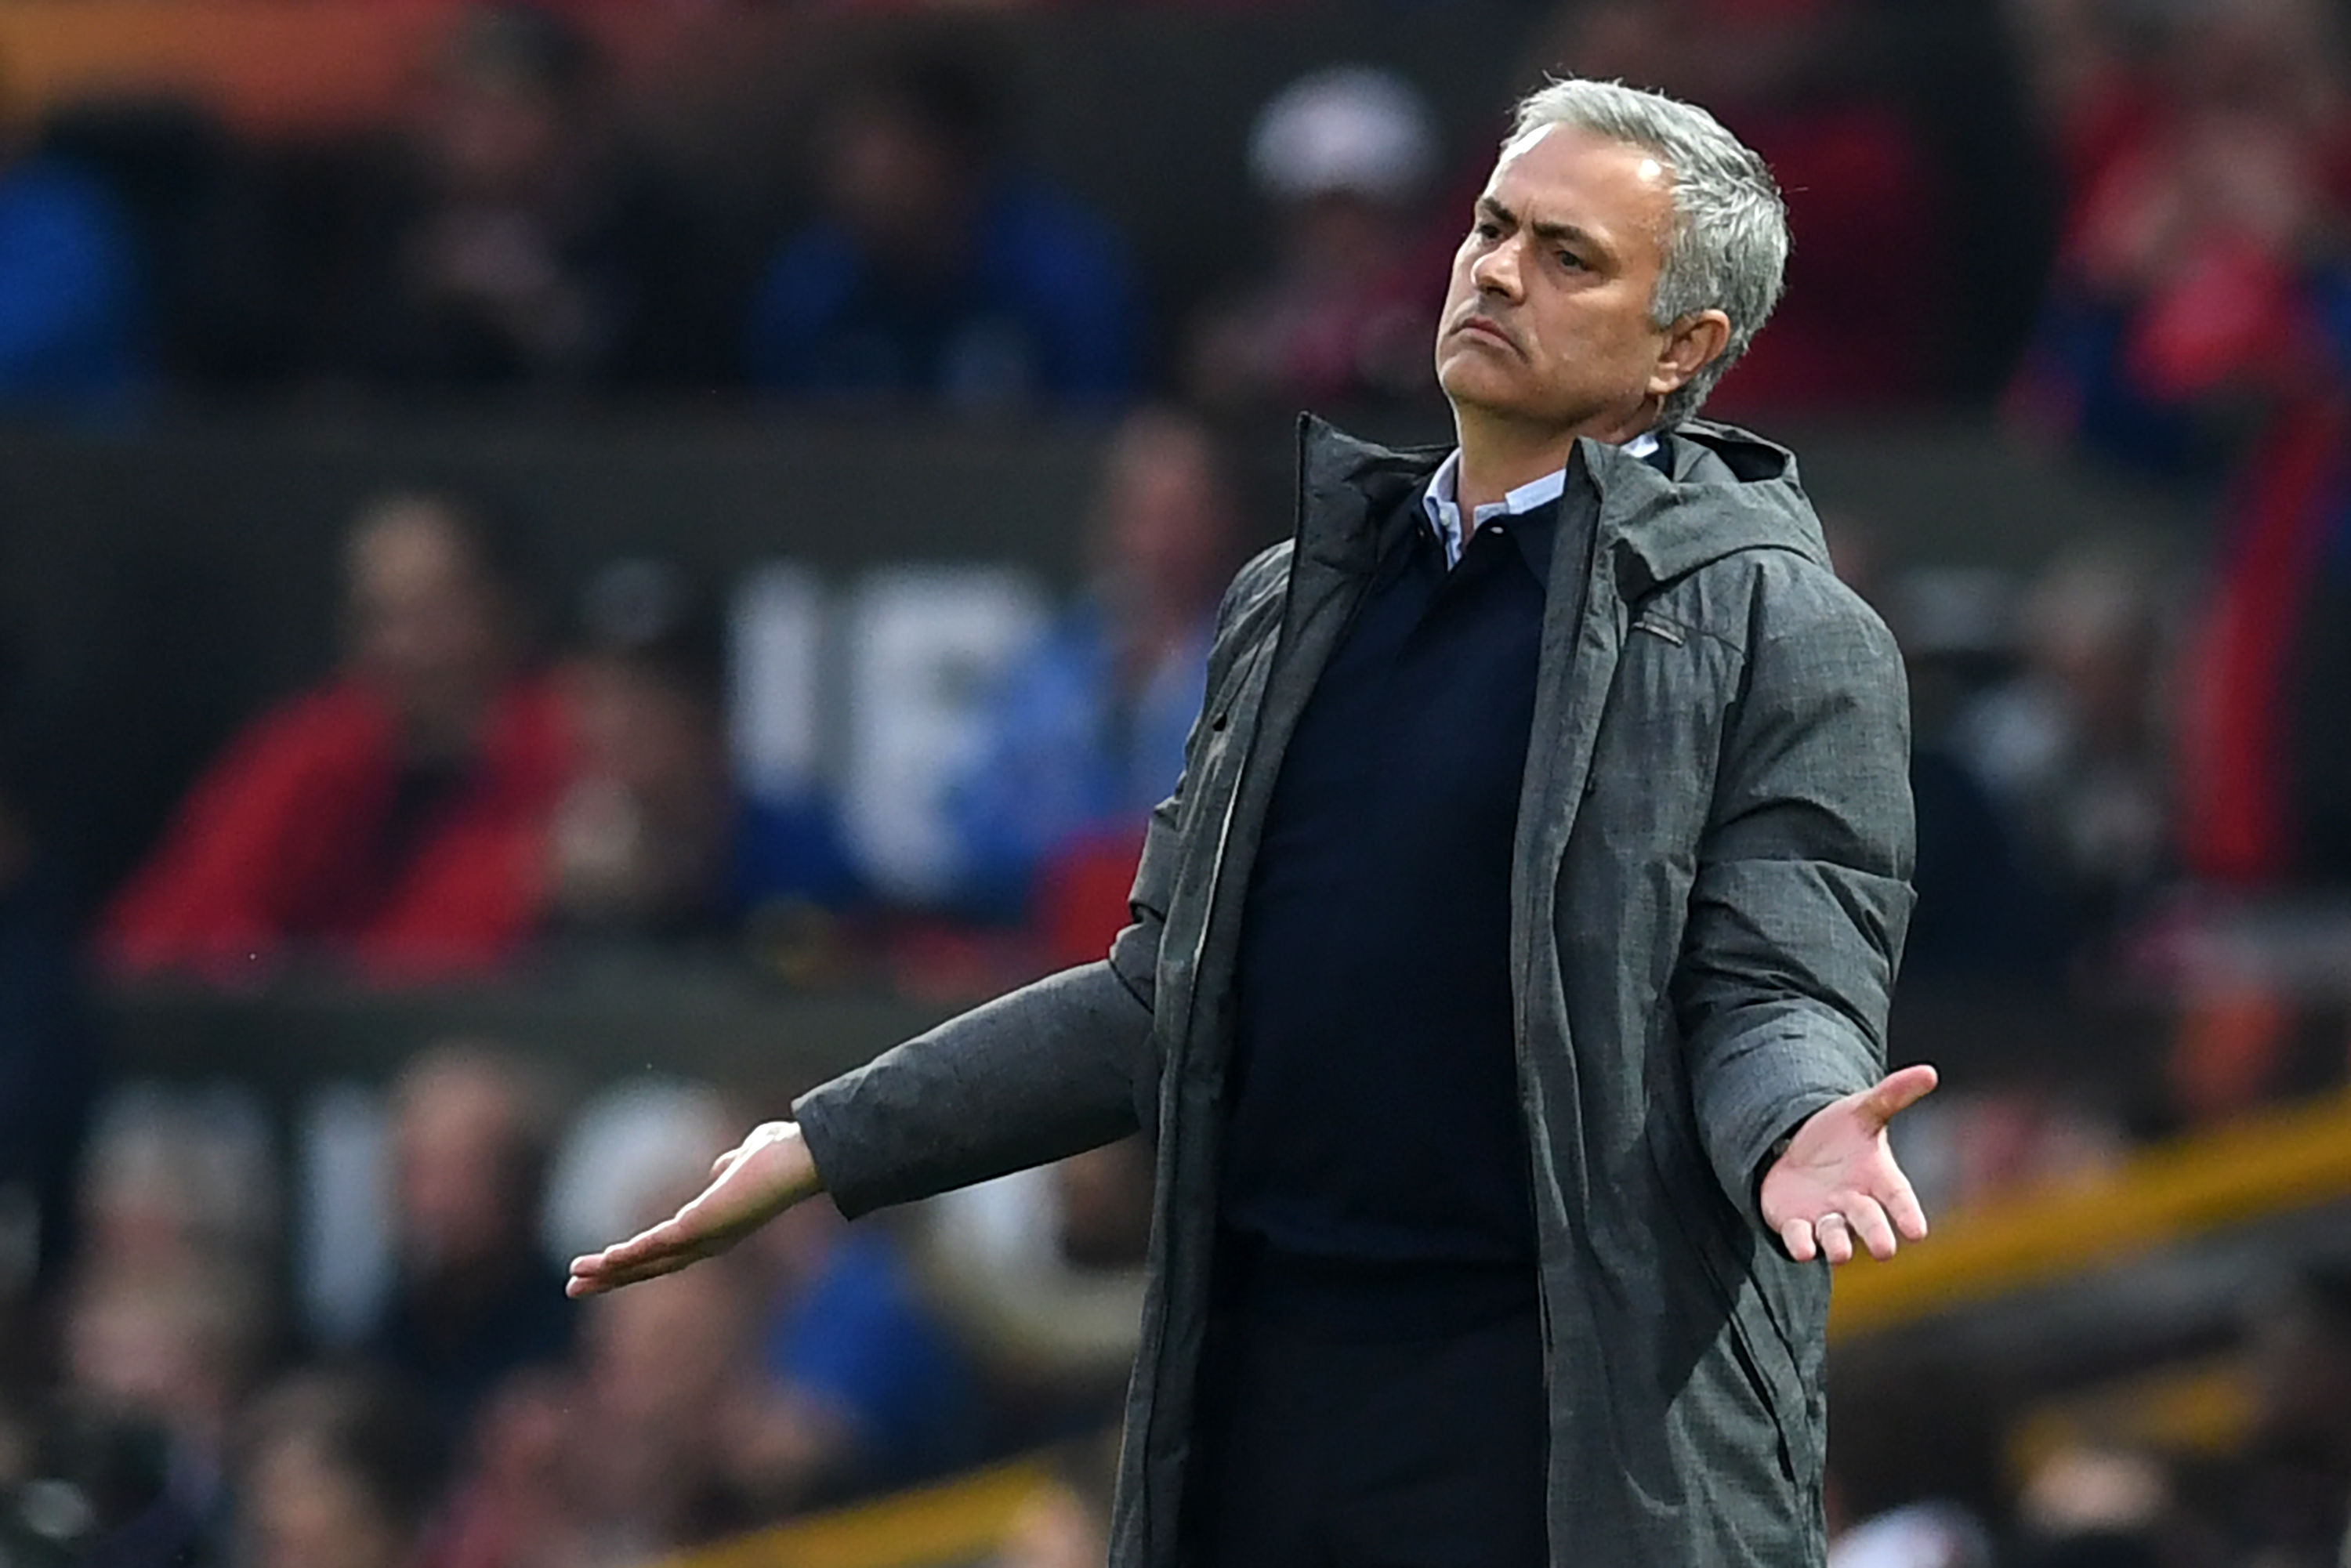 Manchester United have won fewer home games and scored fewer home goals than relegated Hull City